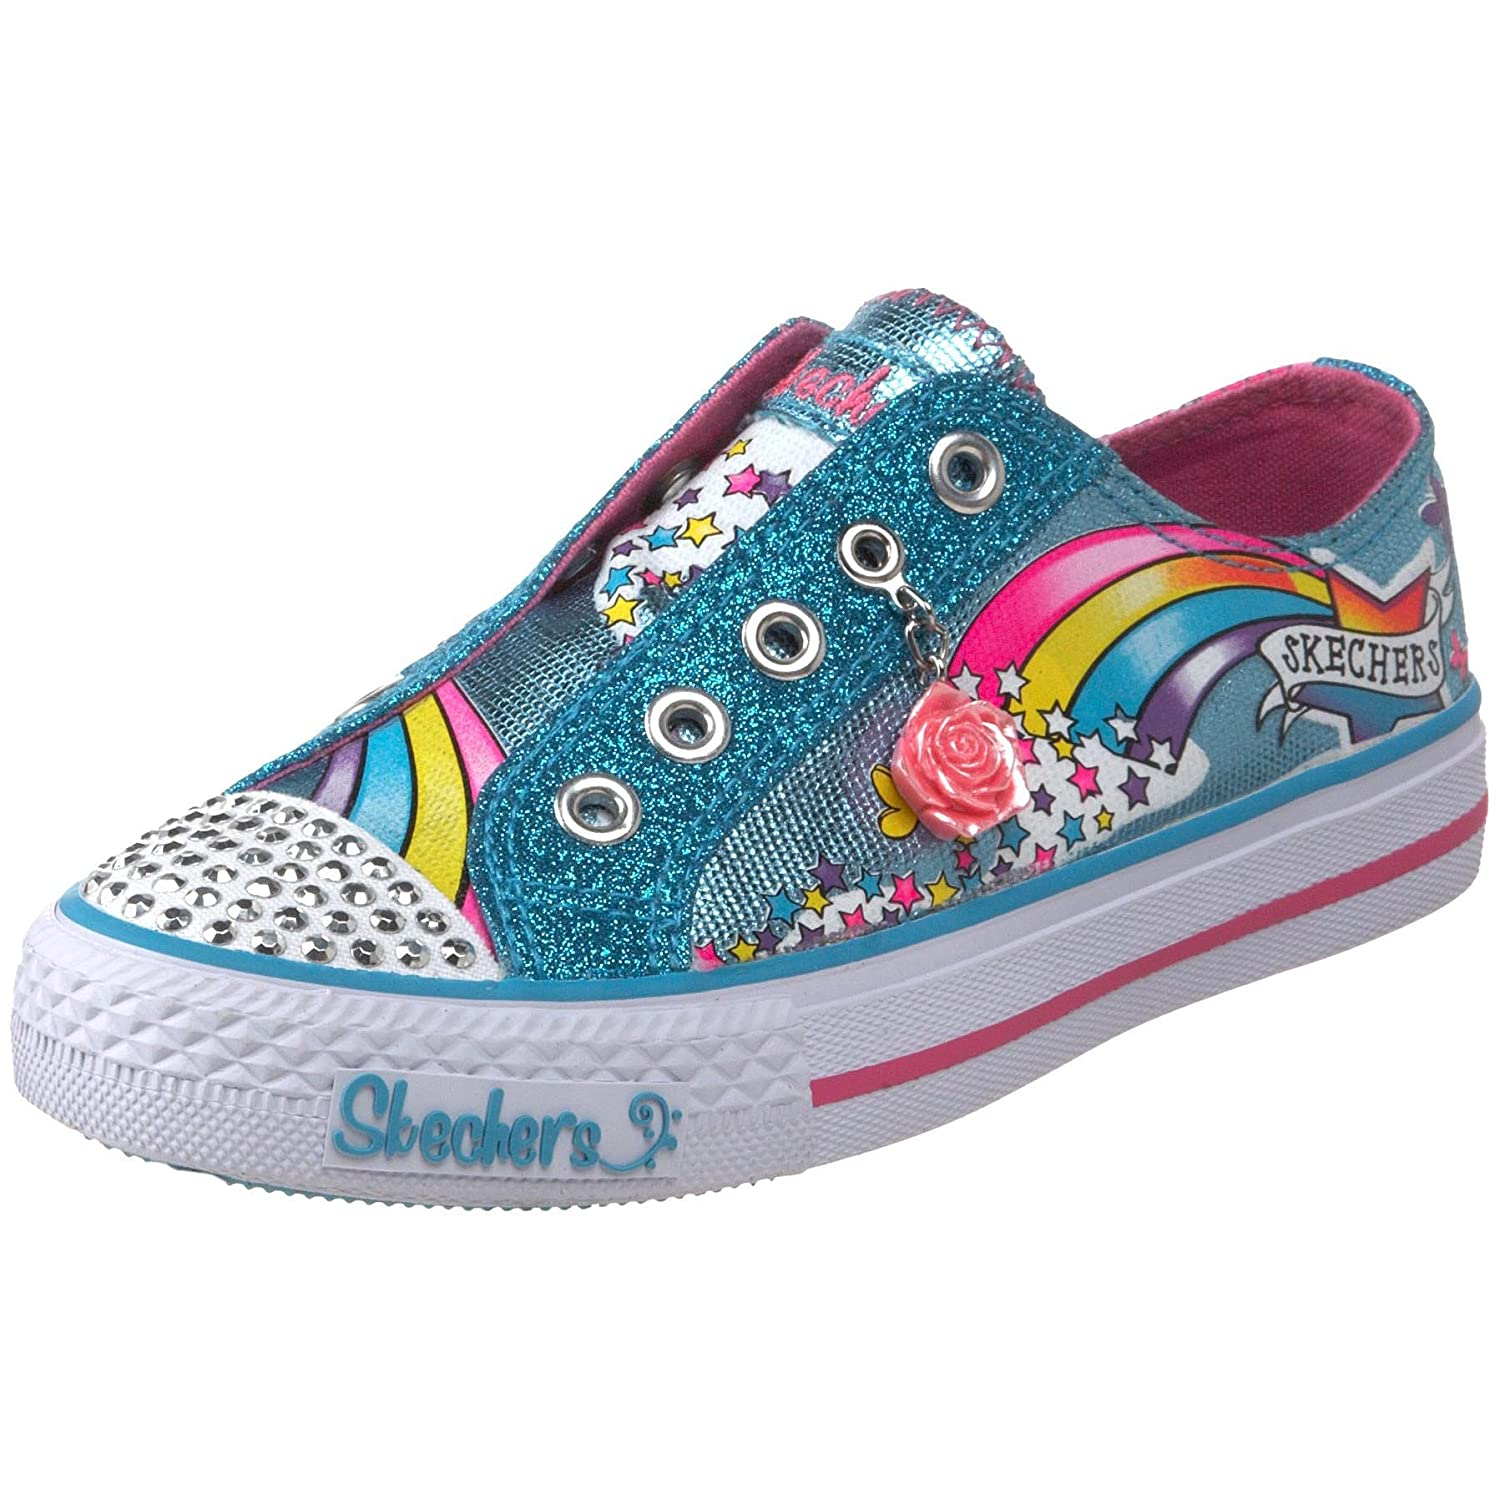 69fed6f19ae3 Skechers Twinkle Toes Shuffles Glitterazzi Light-Up Sneaker (Little Kid Big  Kid) Turquoise Hot Pink  Buy Online at Low Prices in India - Amazon.in